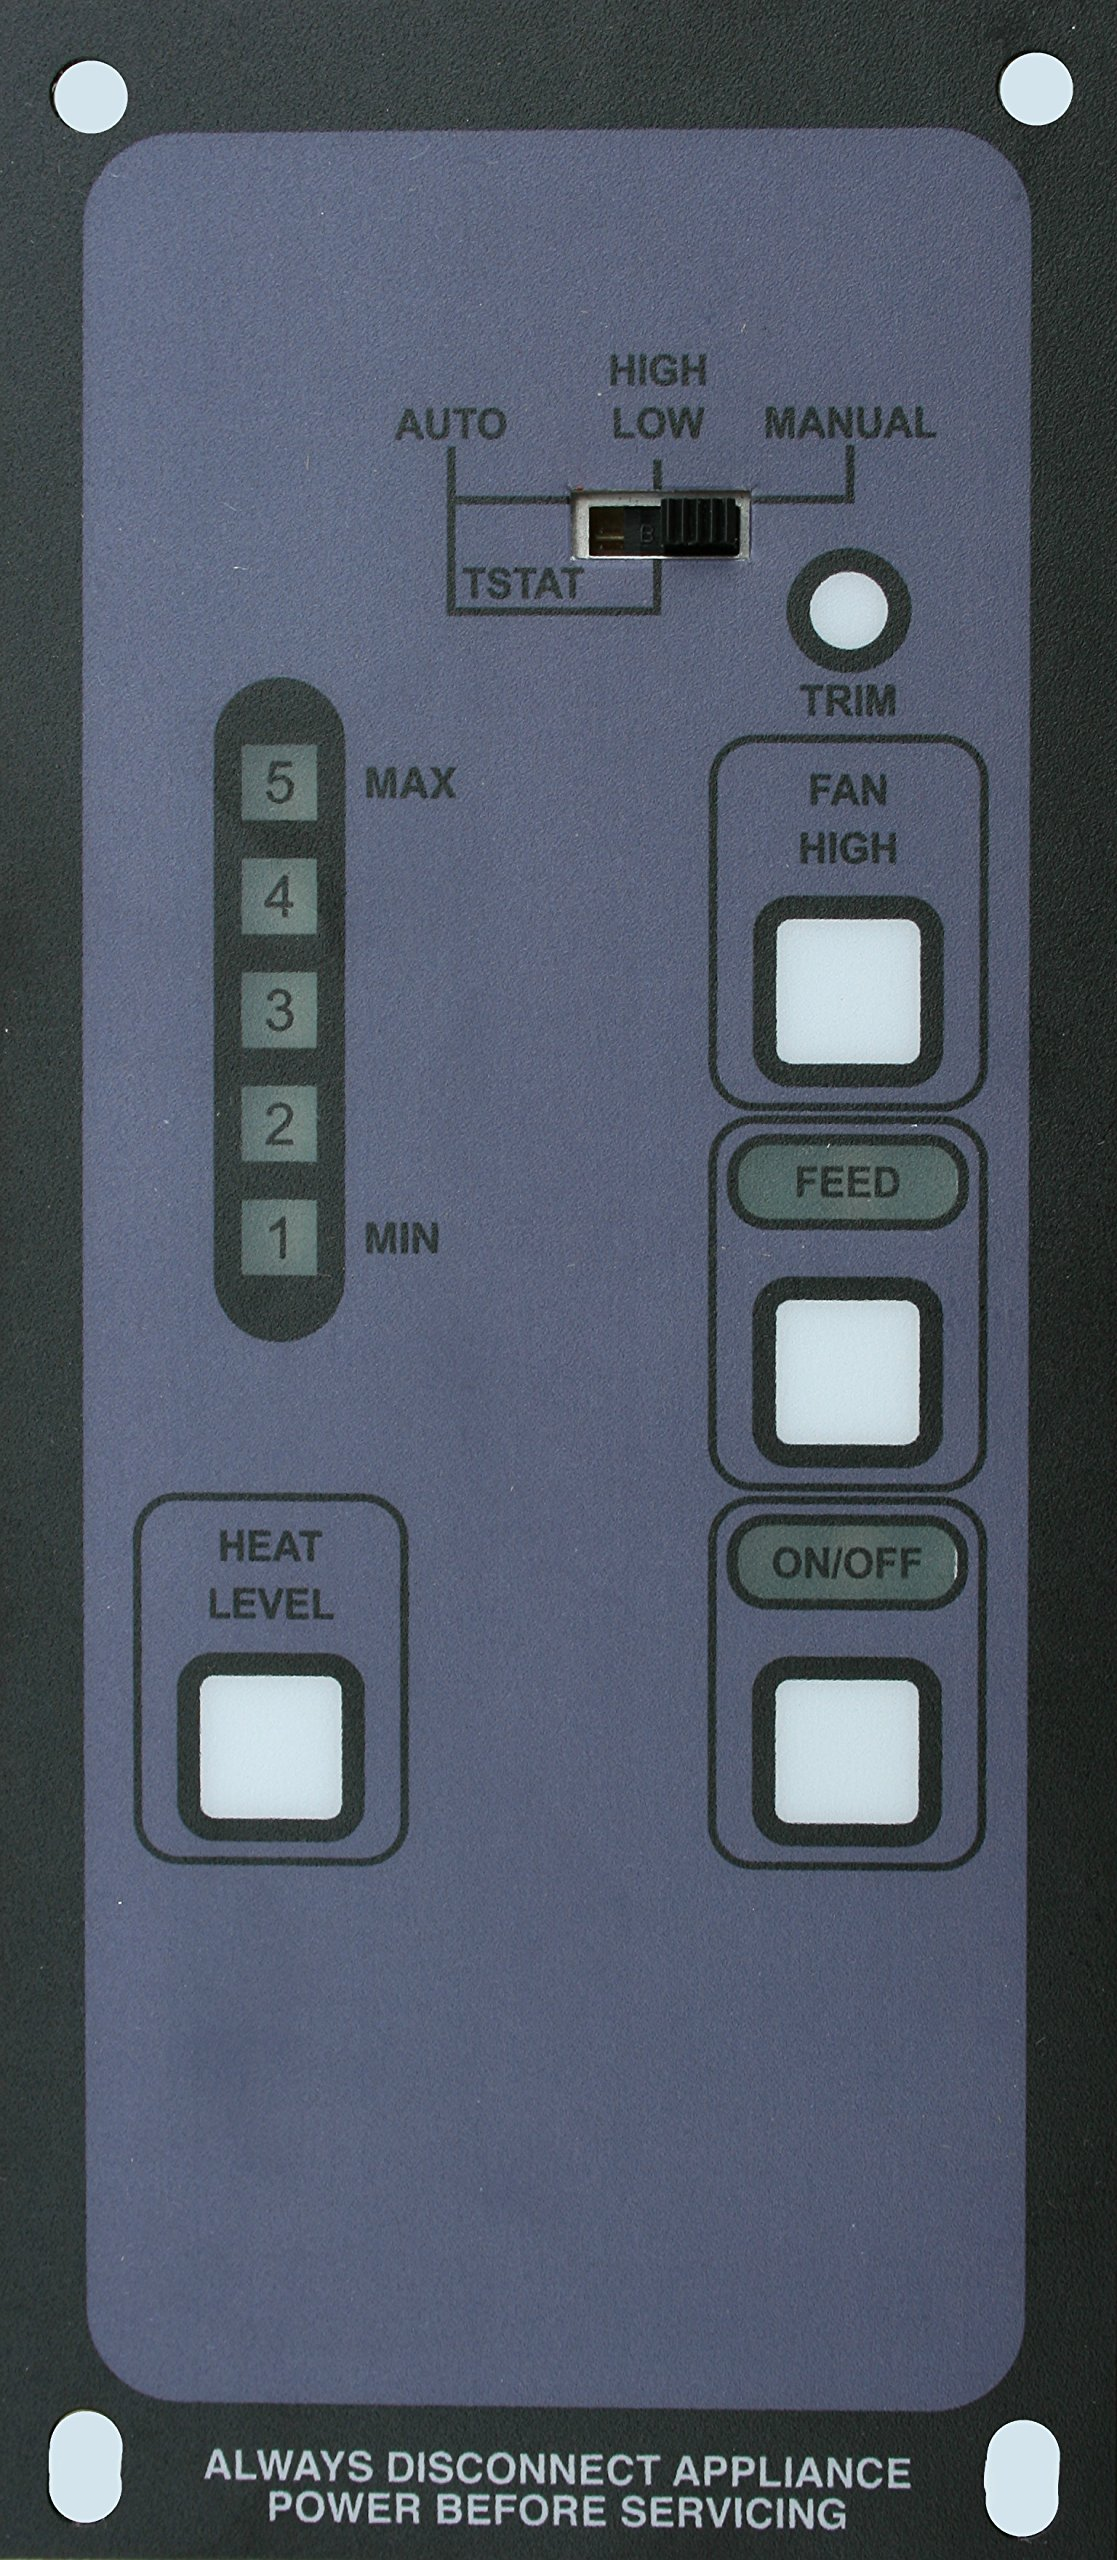 Bosca Spirit/Soul 5-Level Pellet Stove Digital Control Replacement Direct from Manufacturer by Bosca